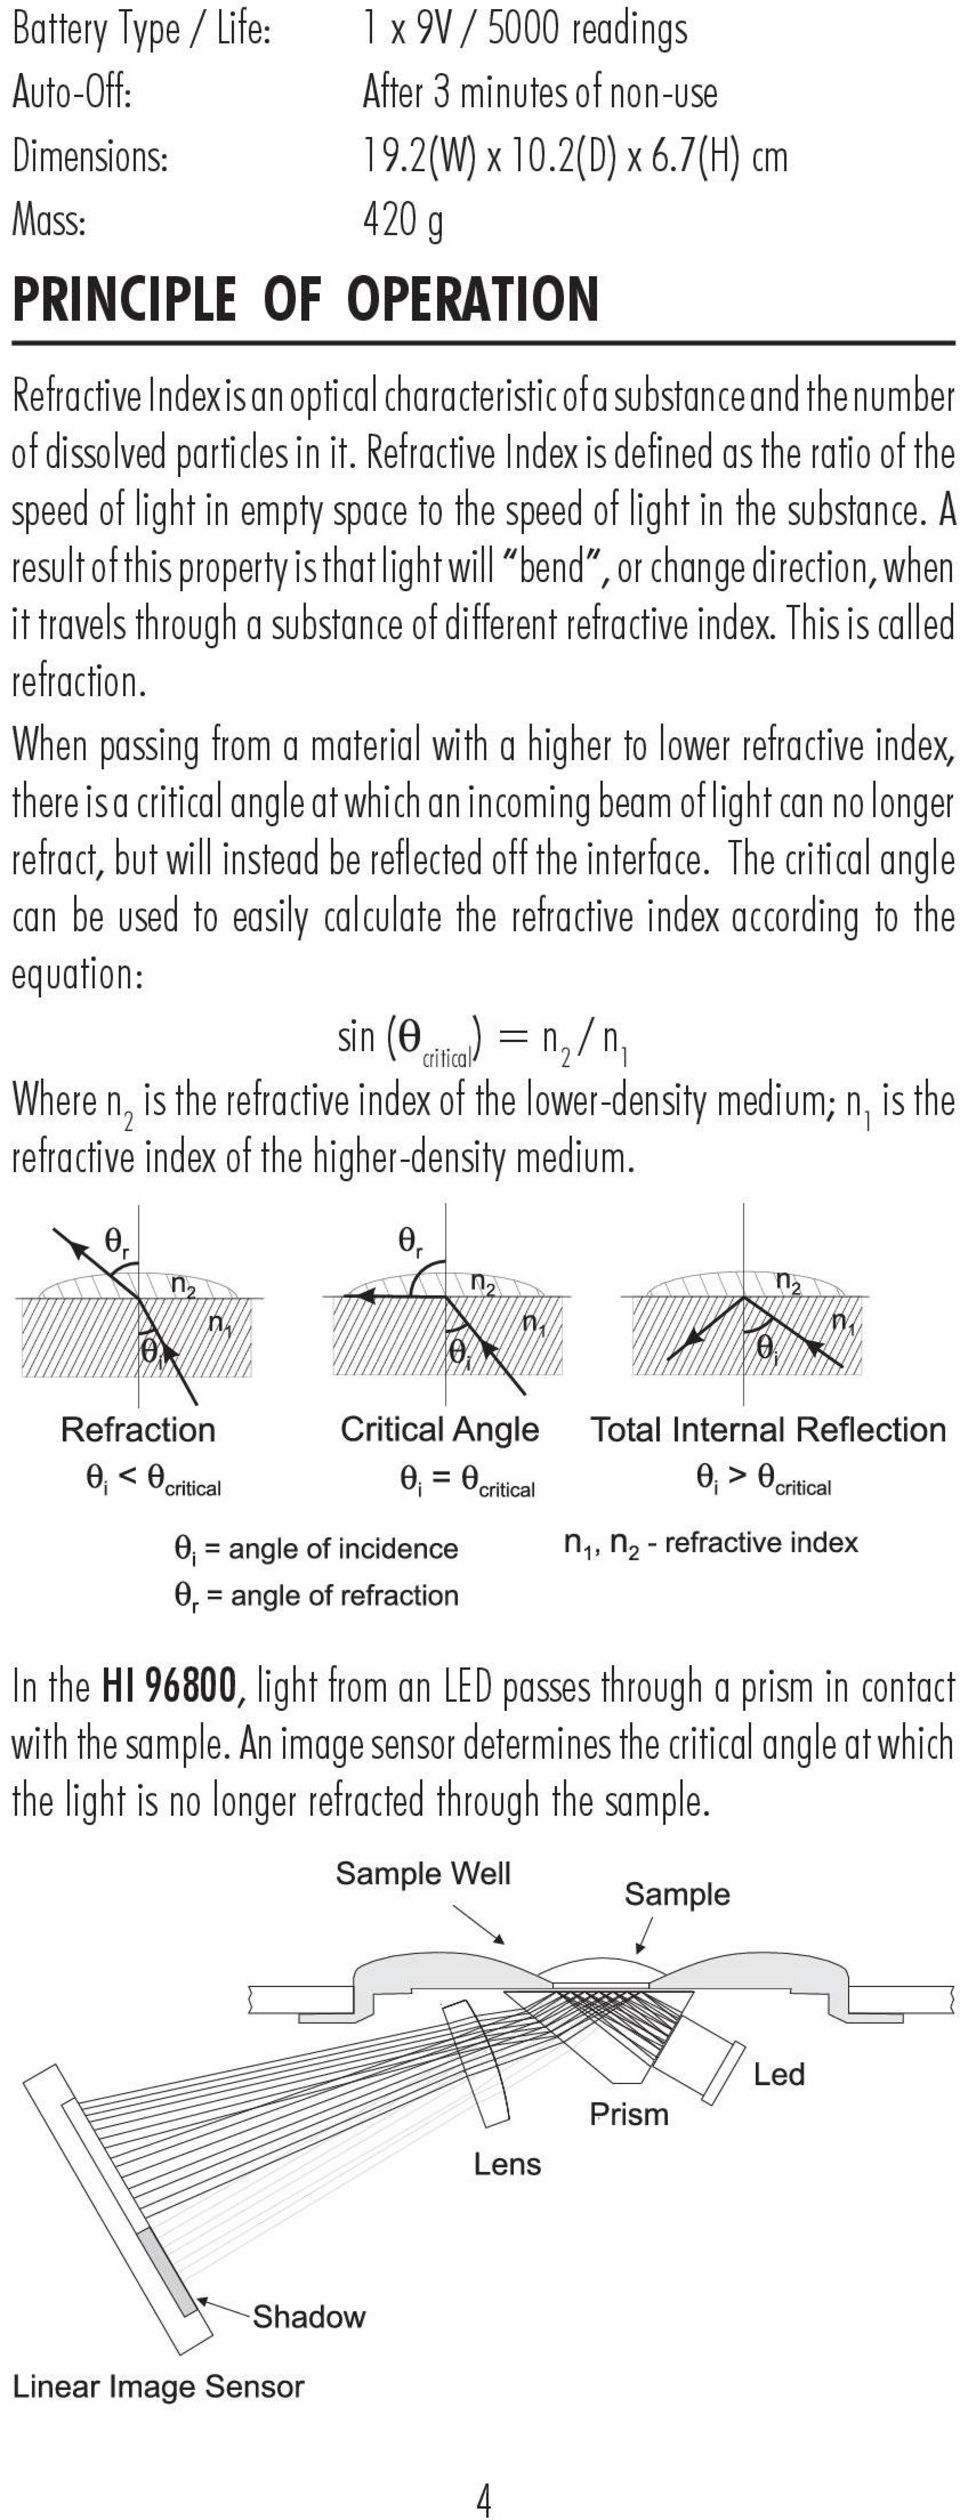 Refractive Index is defined as the ratio of the speed of light in empty space to the speed of light in the substance.